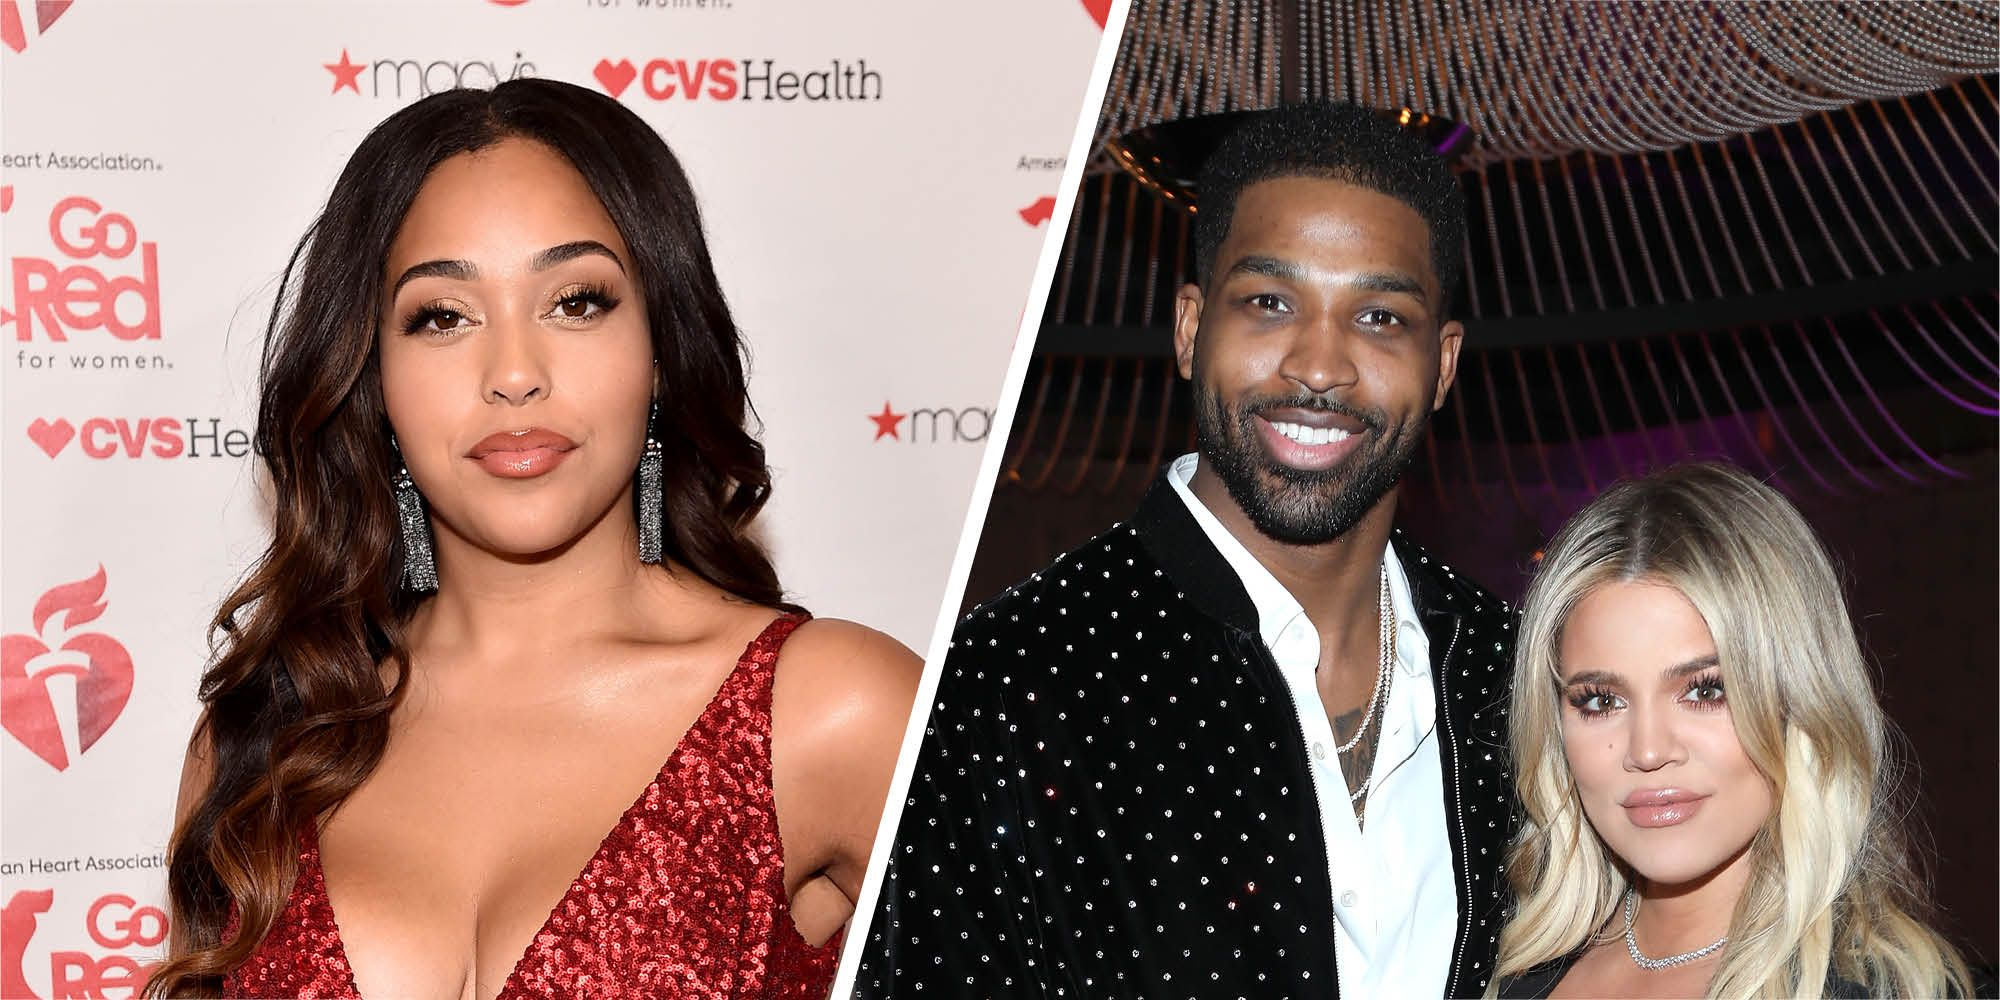 Khloe Kardashian and Tristan Thompson have reportedly broken up because he cheated with Jordyn Woods